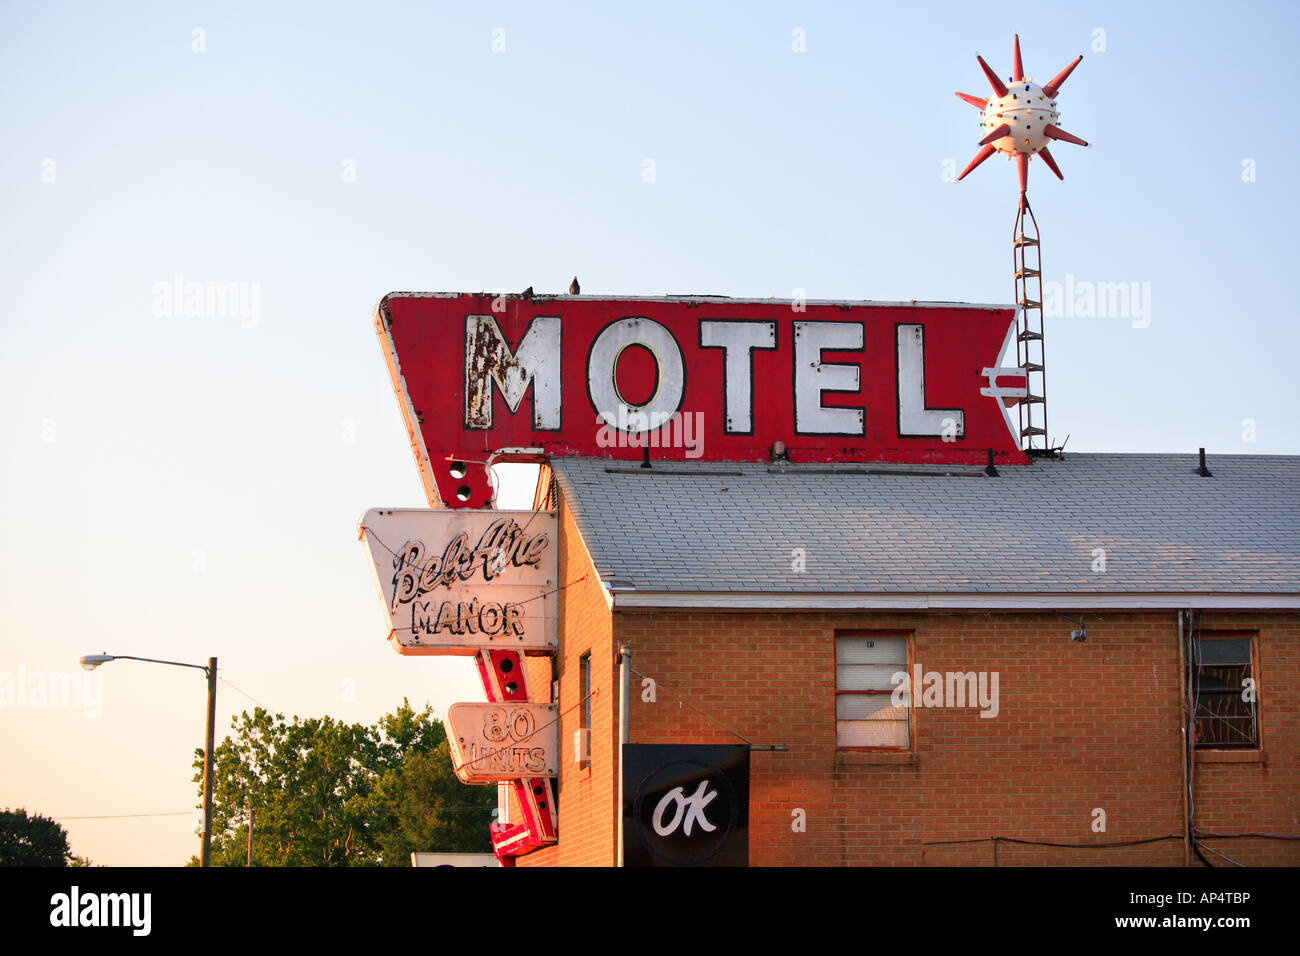 route 66 bel aire manor motel in springfield illinois usa stock